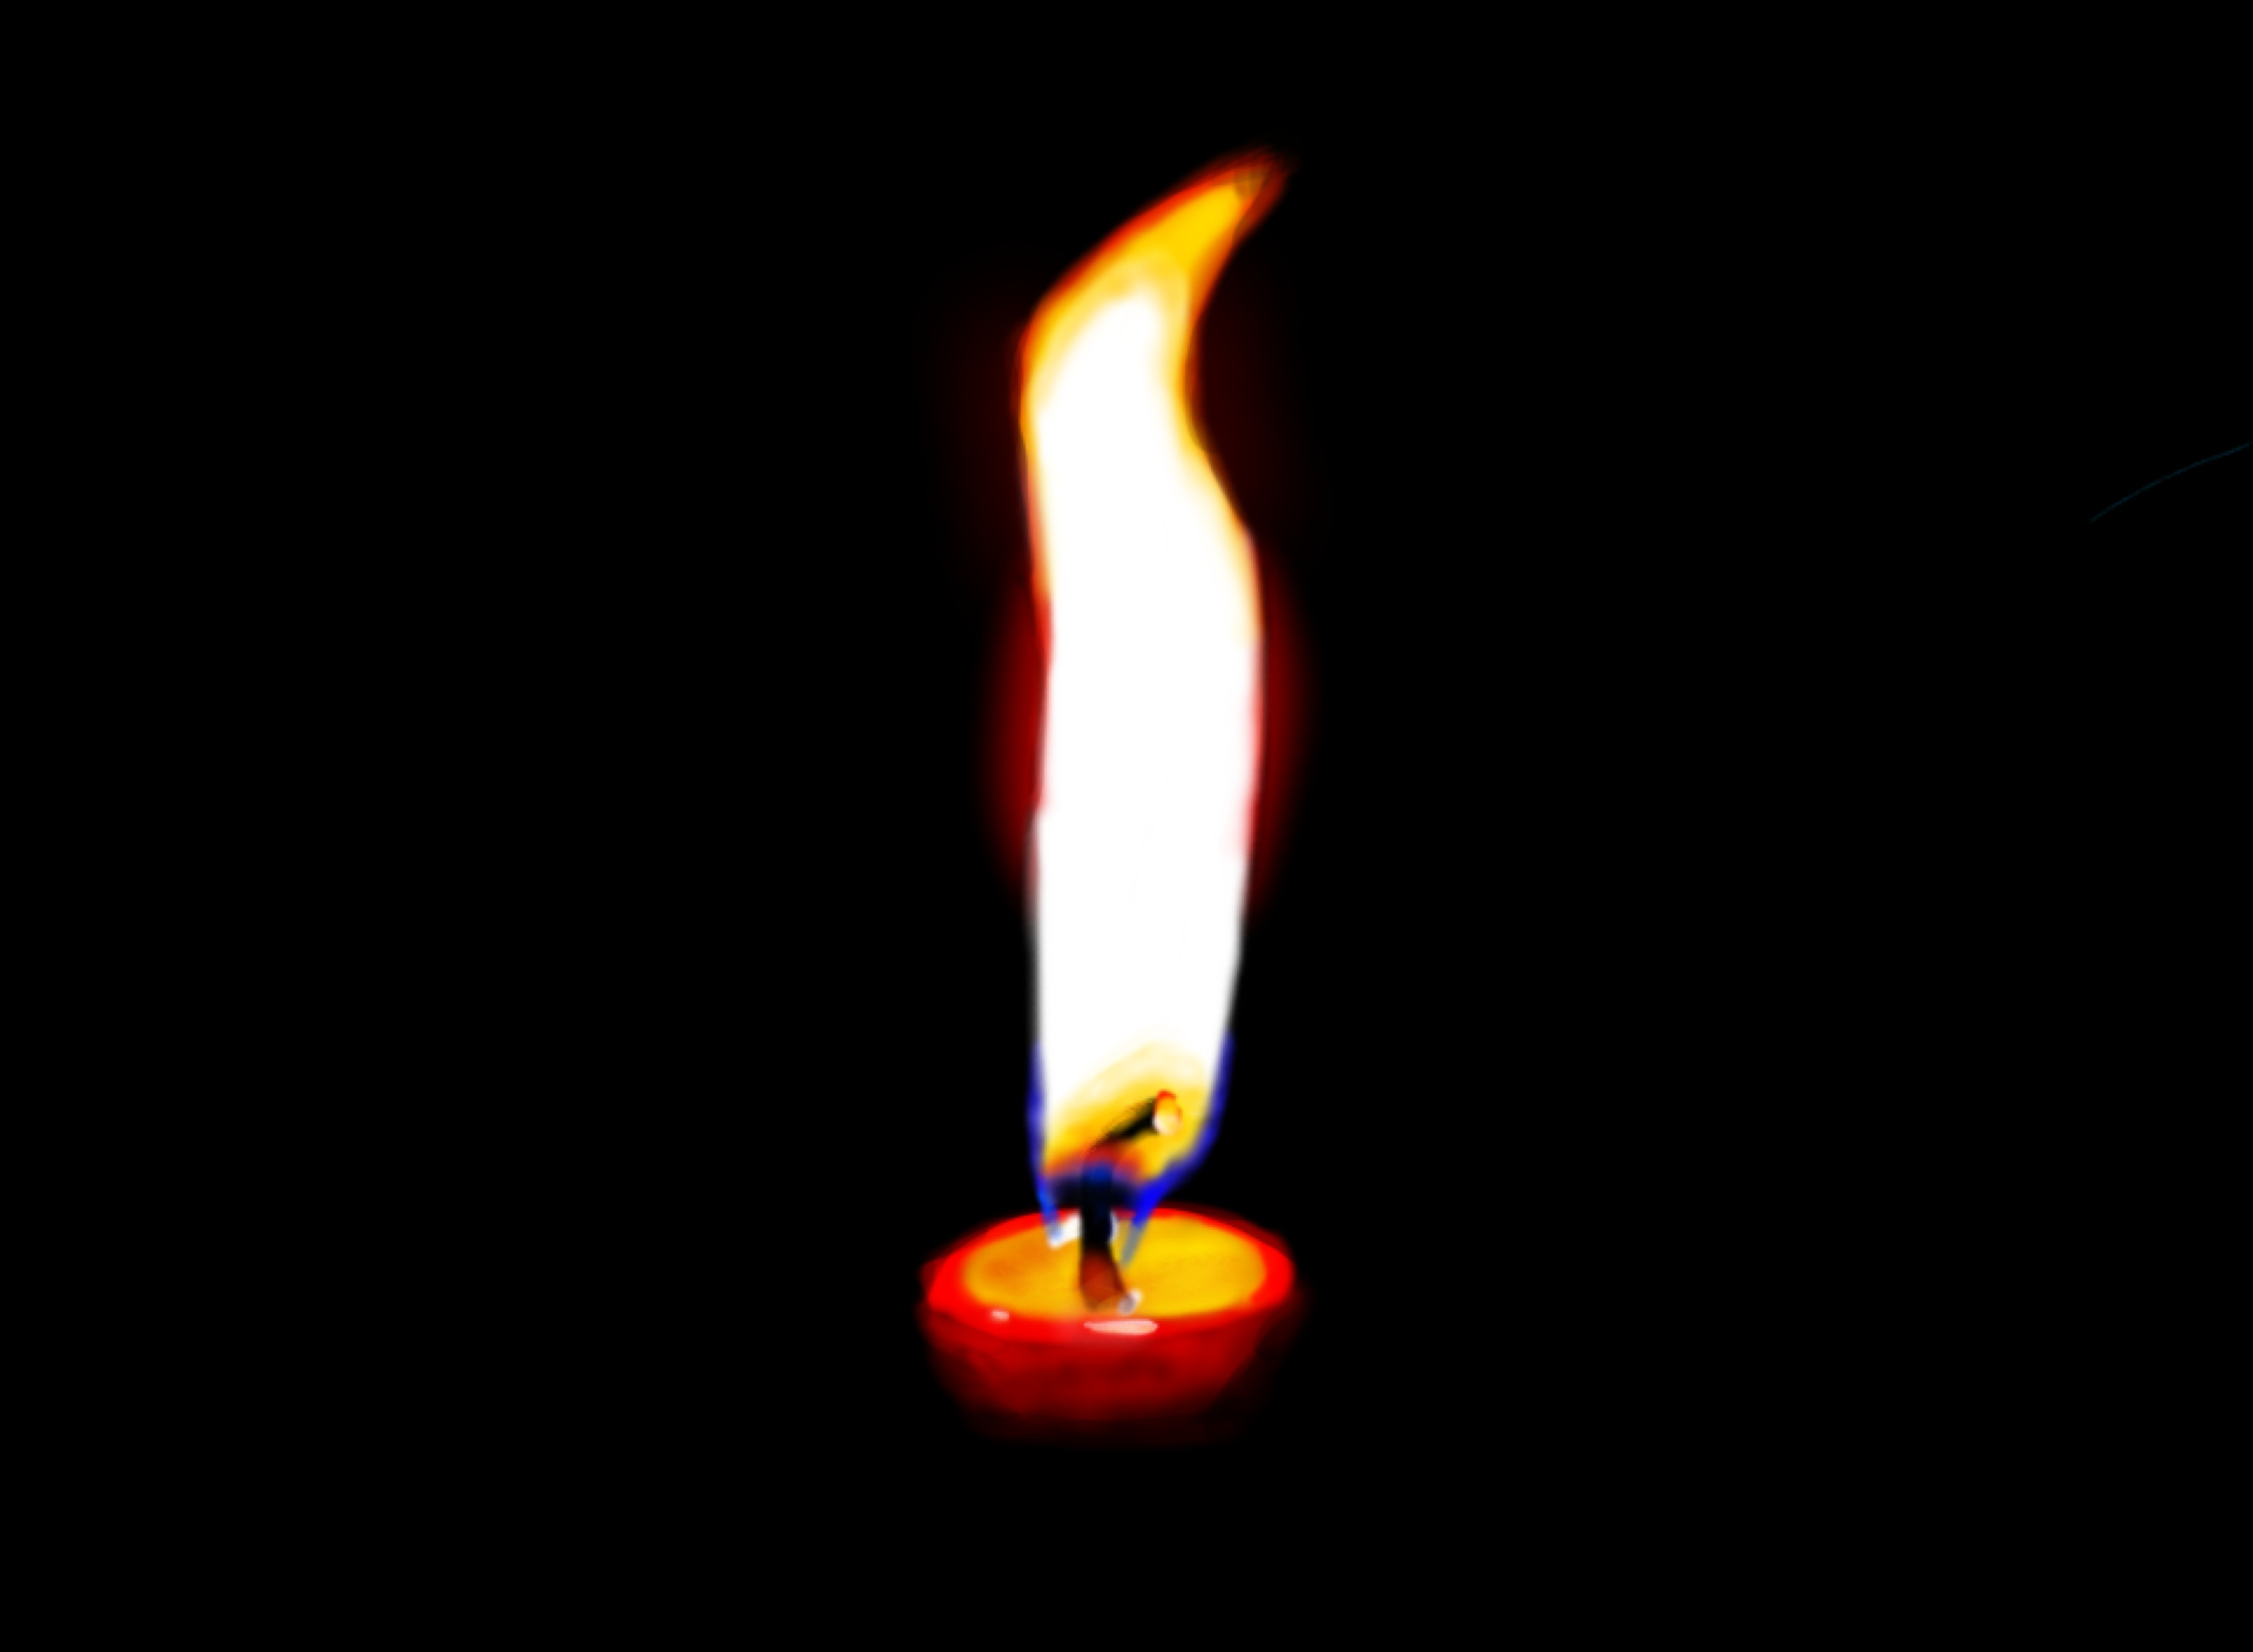 Burning Candle Png Hd - Pin Drawn Fire Candle Flame #10   Candle Flame Png Hd, Transparent background PNG HD thumbnail